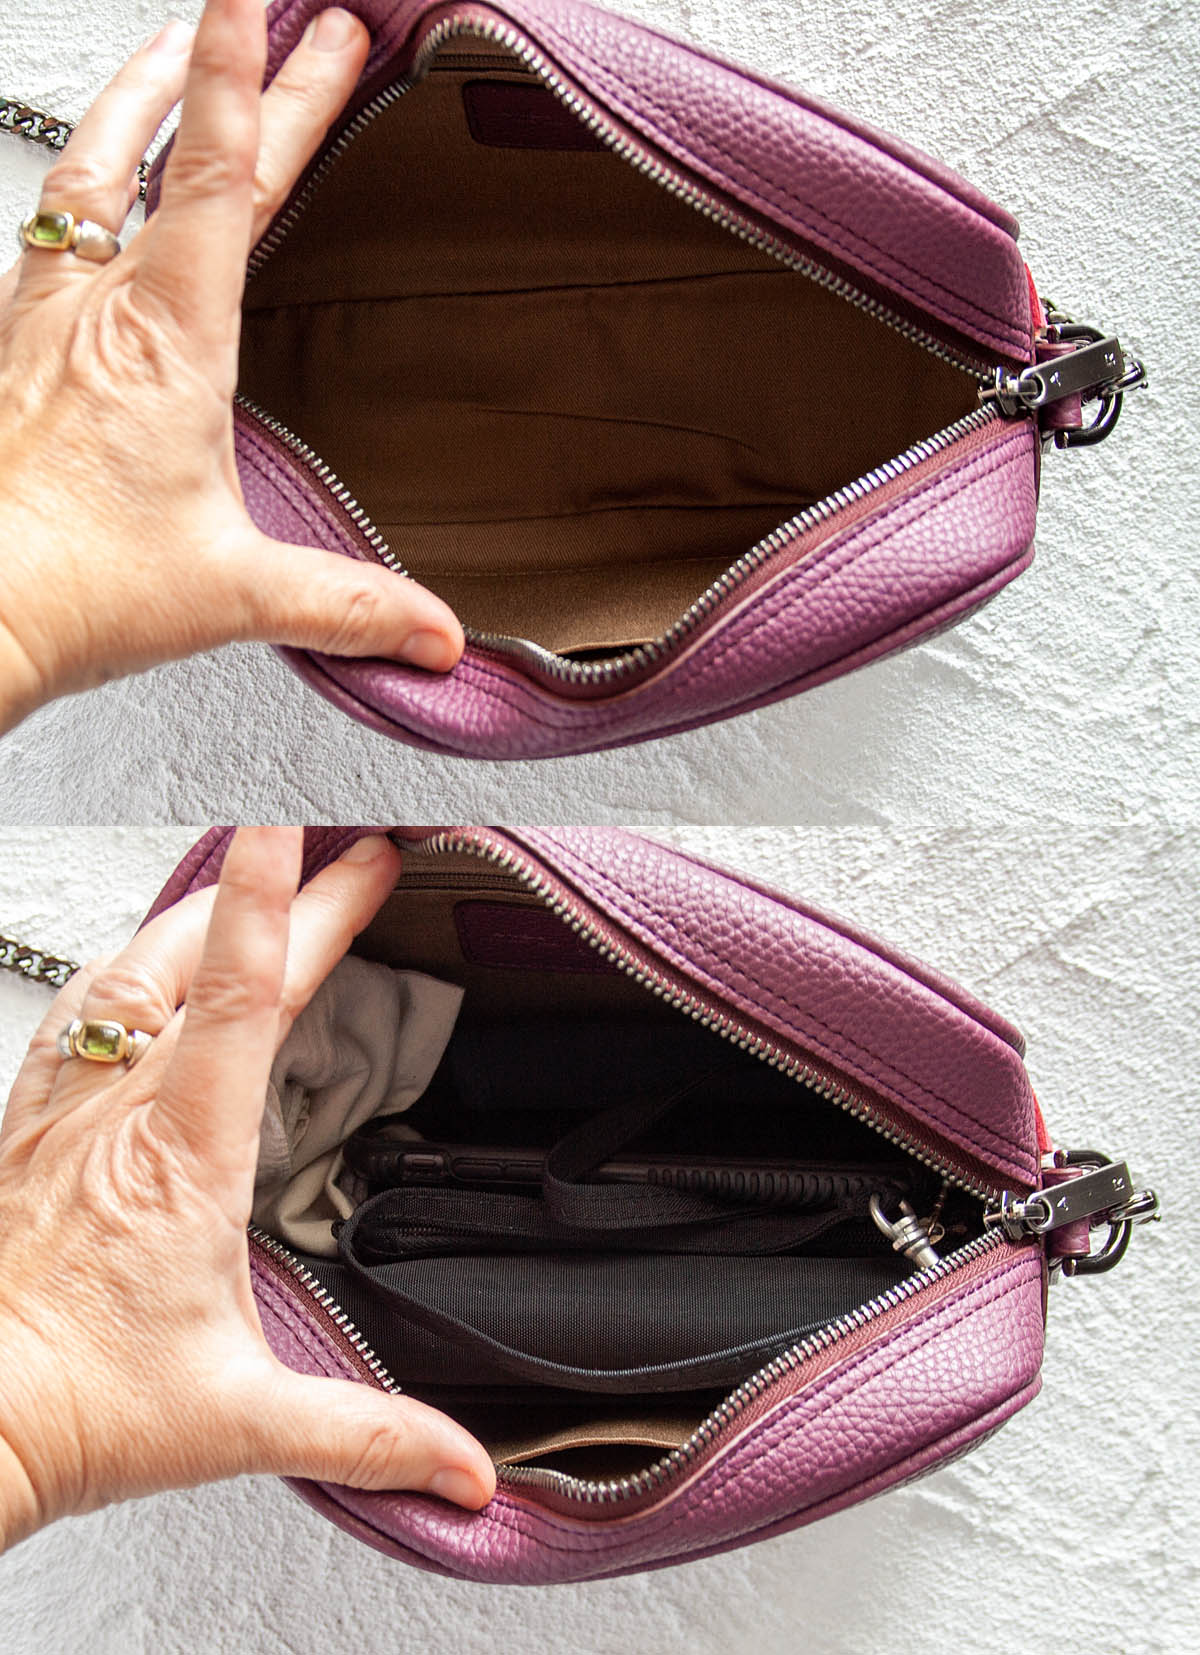 Grace Mini Crossbody showing the inside empty (top photo) and full (bottom photo).